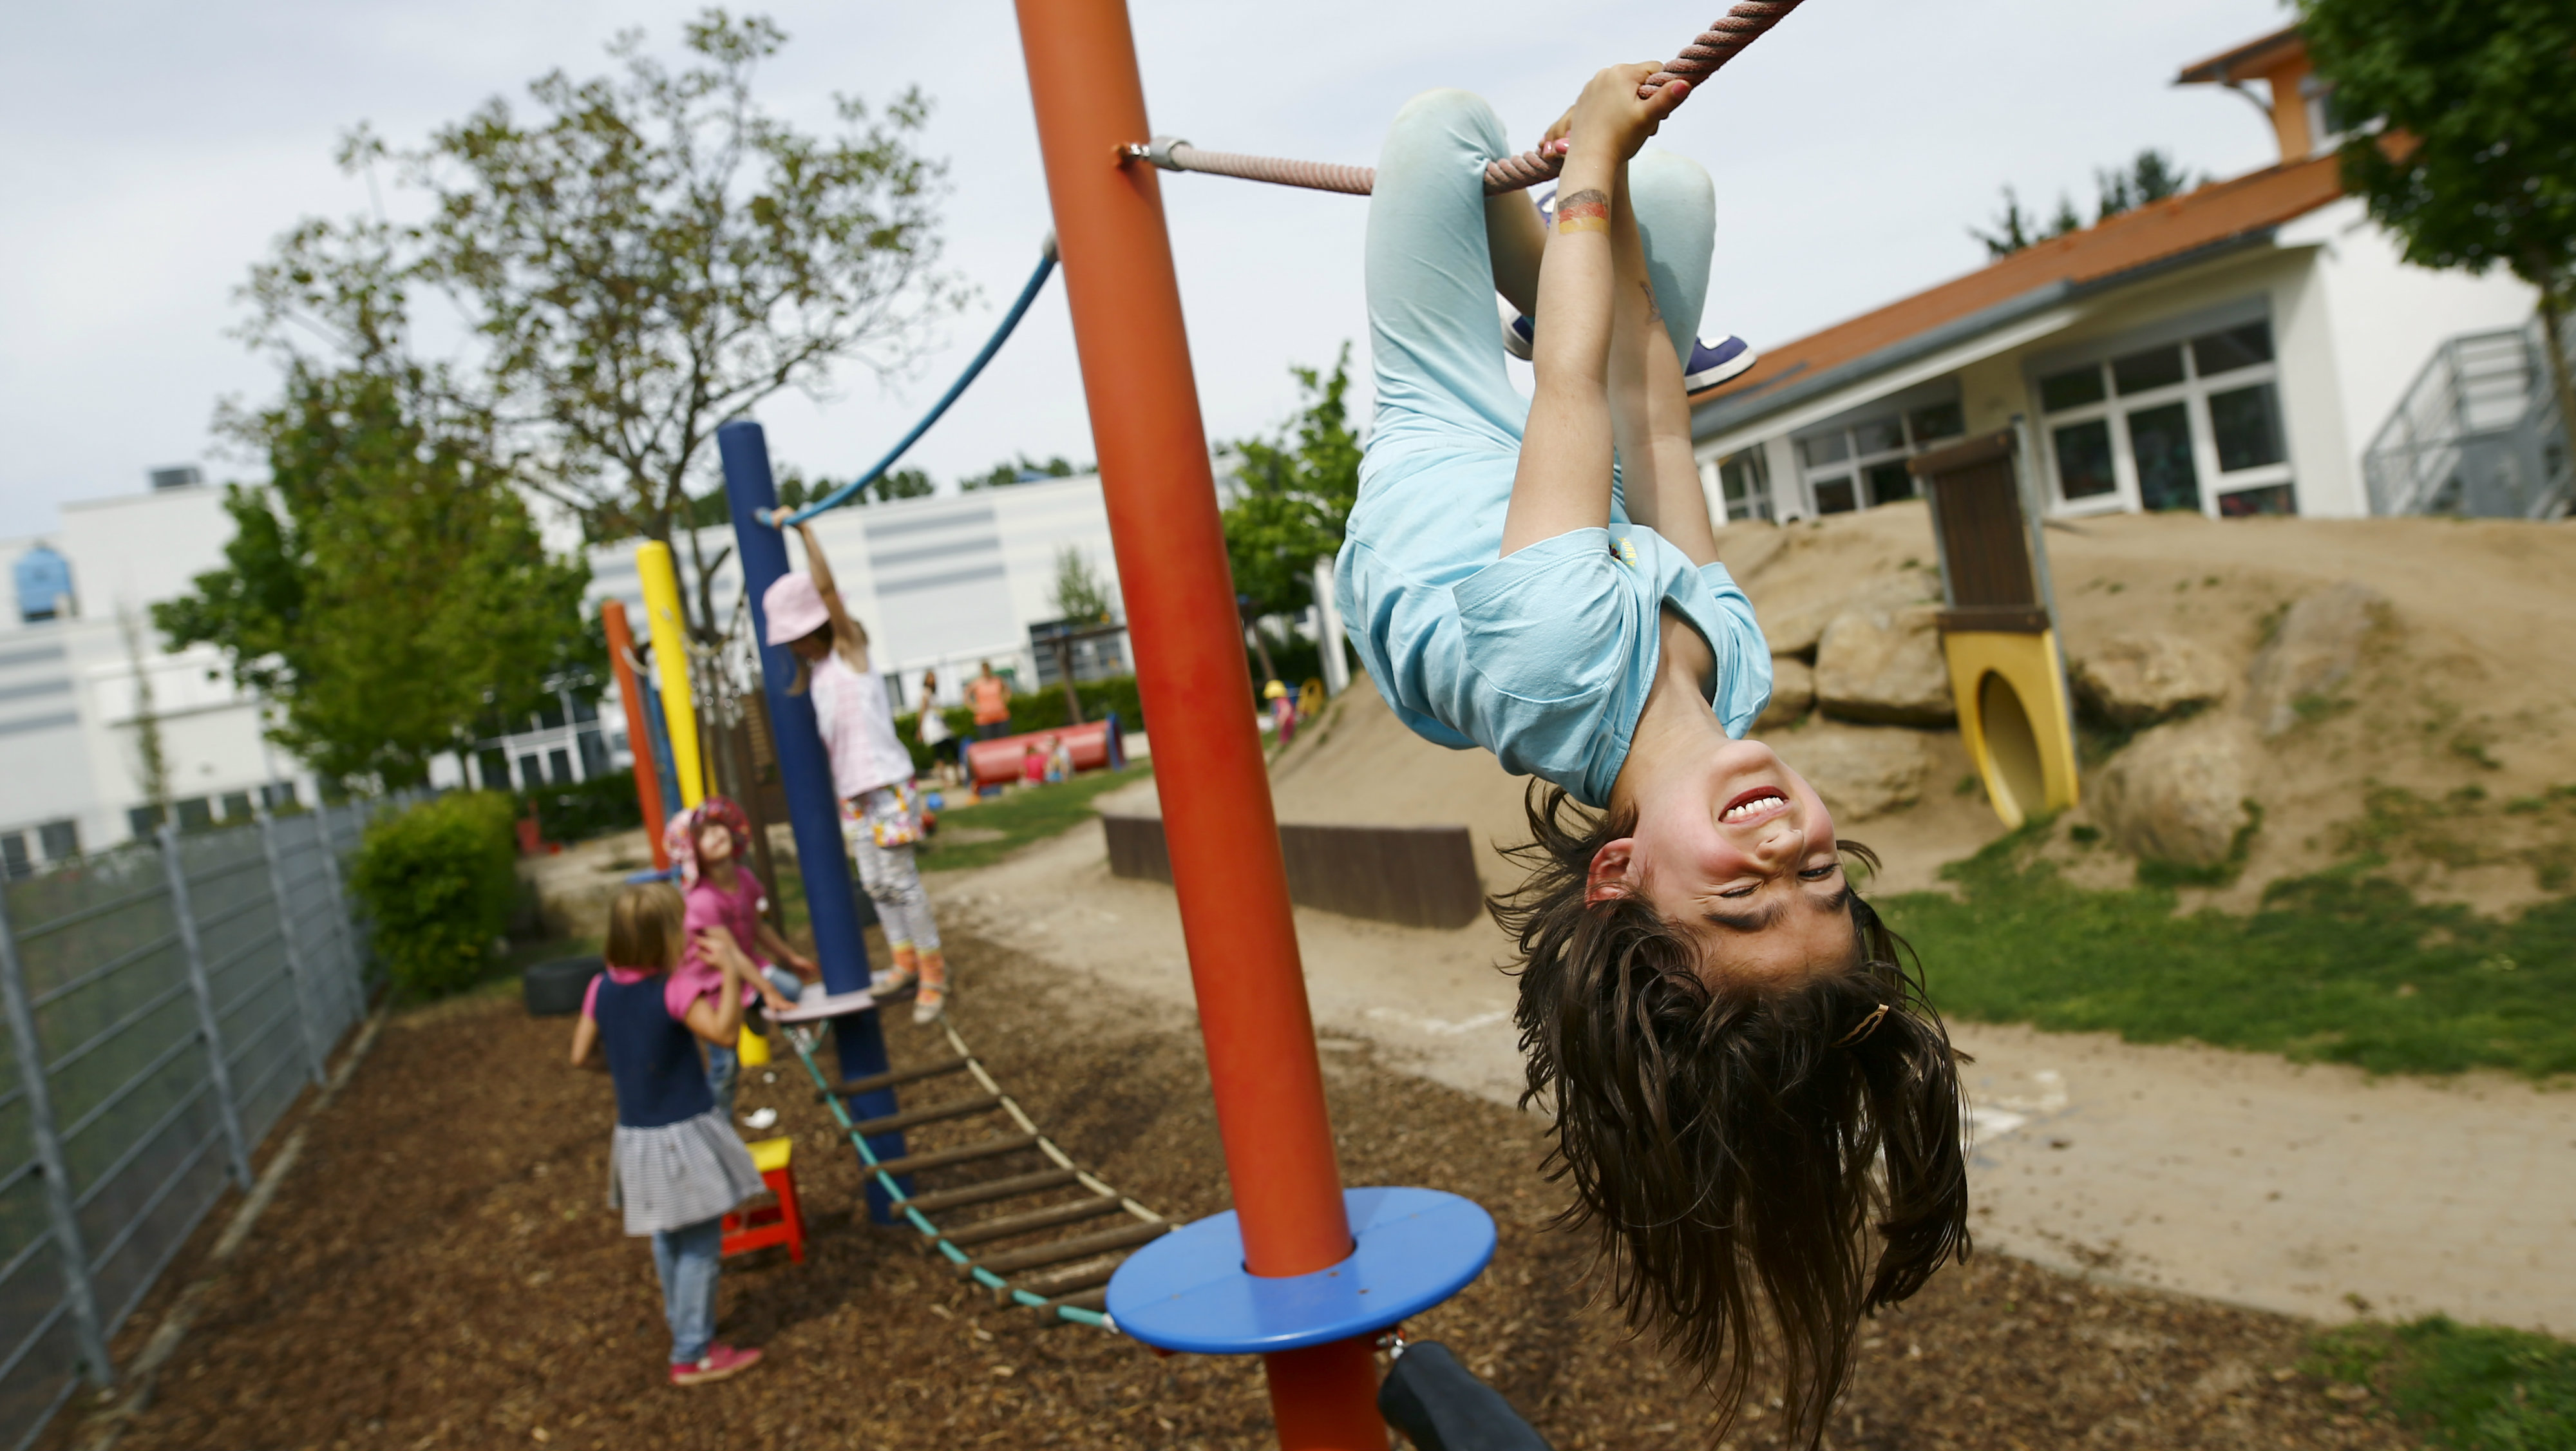 Children play in the garden of their kindergarten run by a private foundation which is not affected by the nursery caretakers' strike in Hanau, 30km south of Frankfurt, Germany, May 11, 2015. Most of the kindergartens run by public services all over Germany face a strike of the nursery caretakers as they fight for higher wages and better working conditions. REUTERS/Kai Pfaffenbach